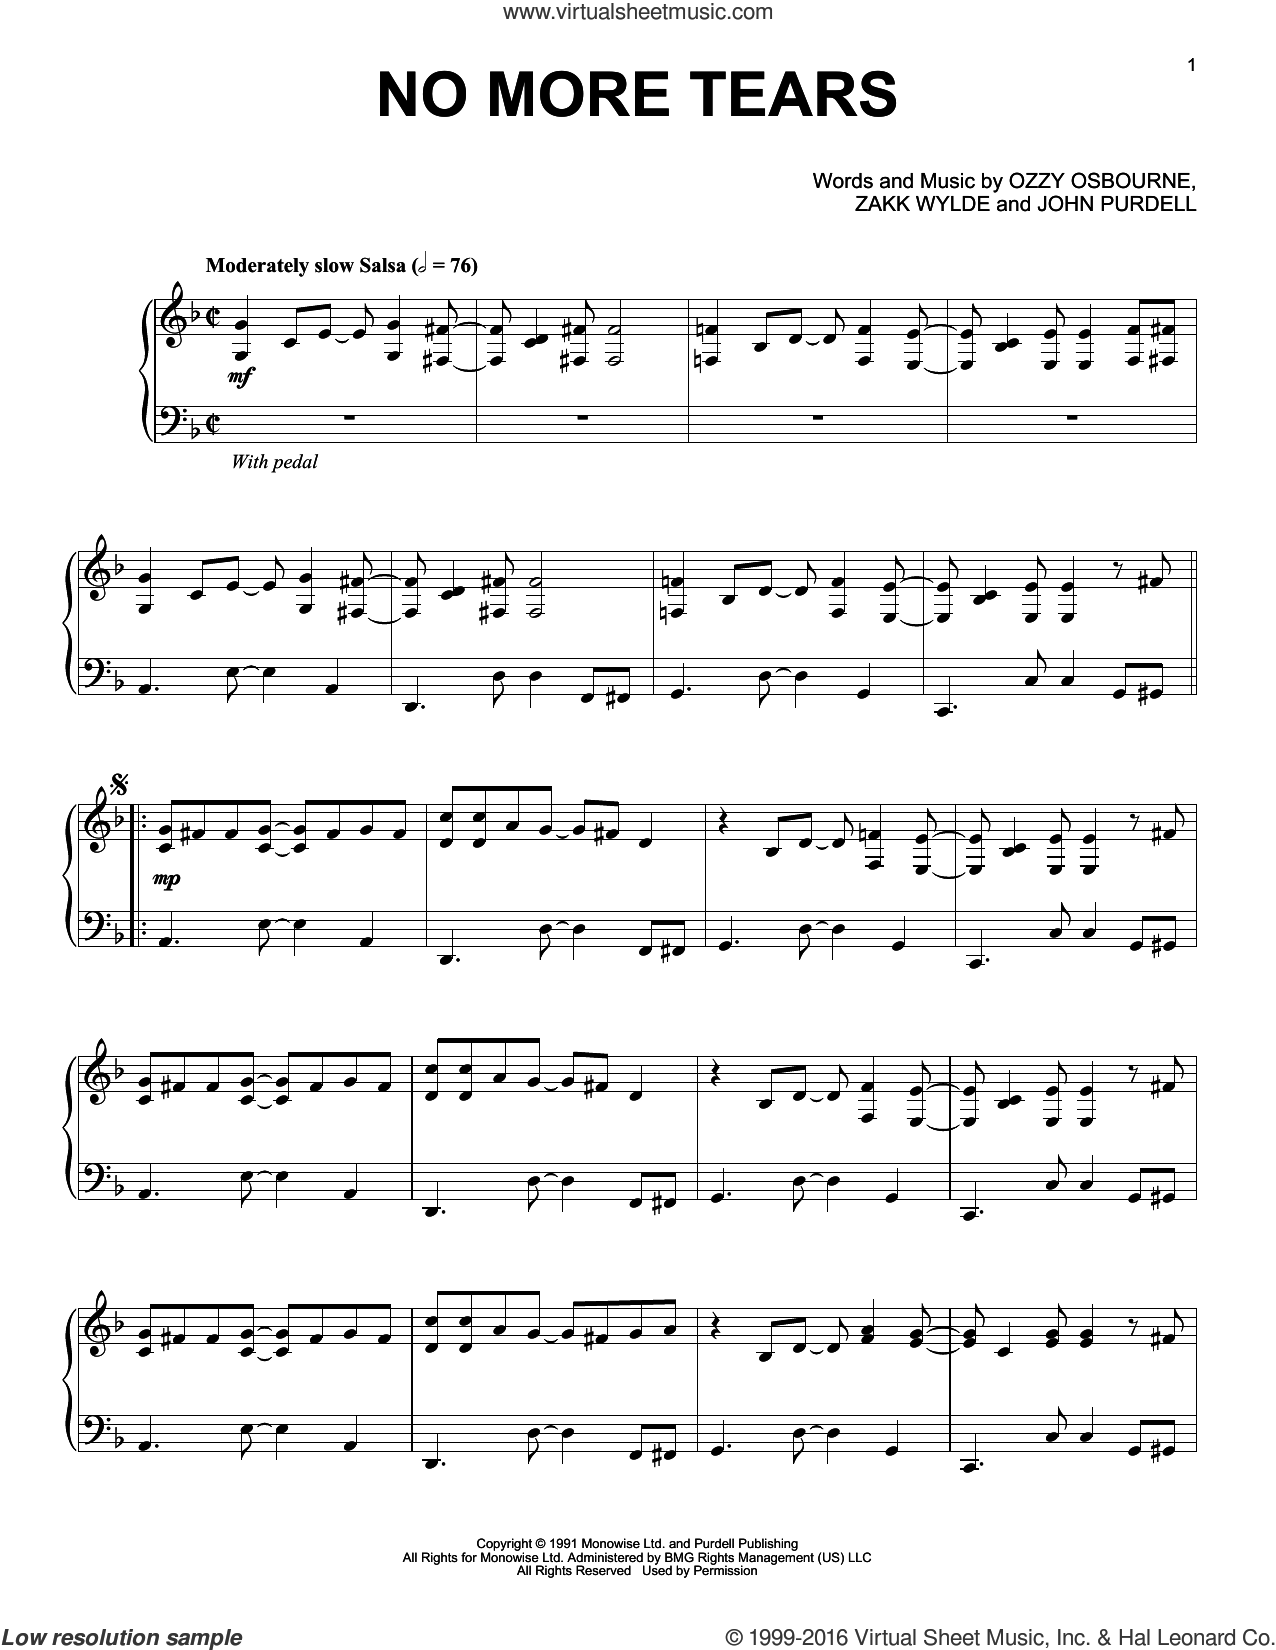 No More Tears sheet music for piano solo by Ozzy Osbourne, John Purdell and Zakk Wylde, intermediate skill level